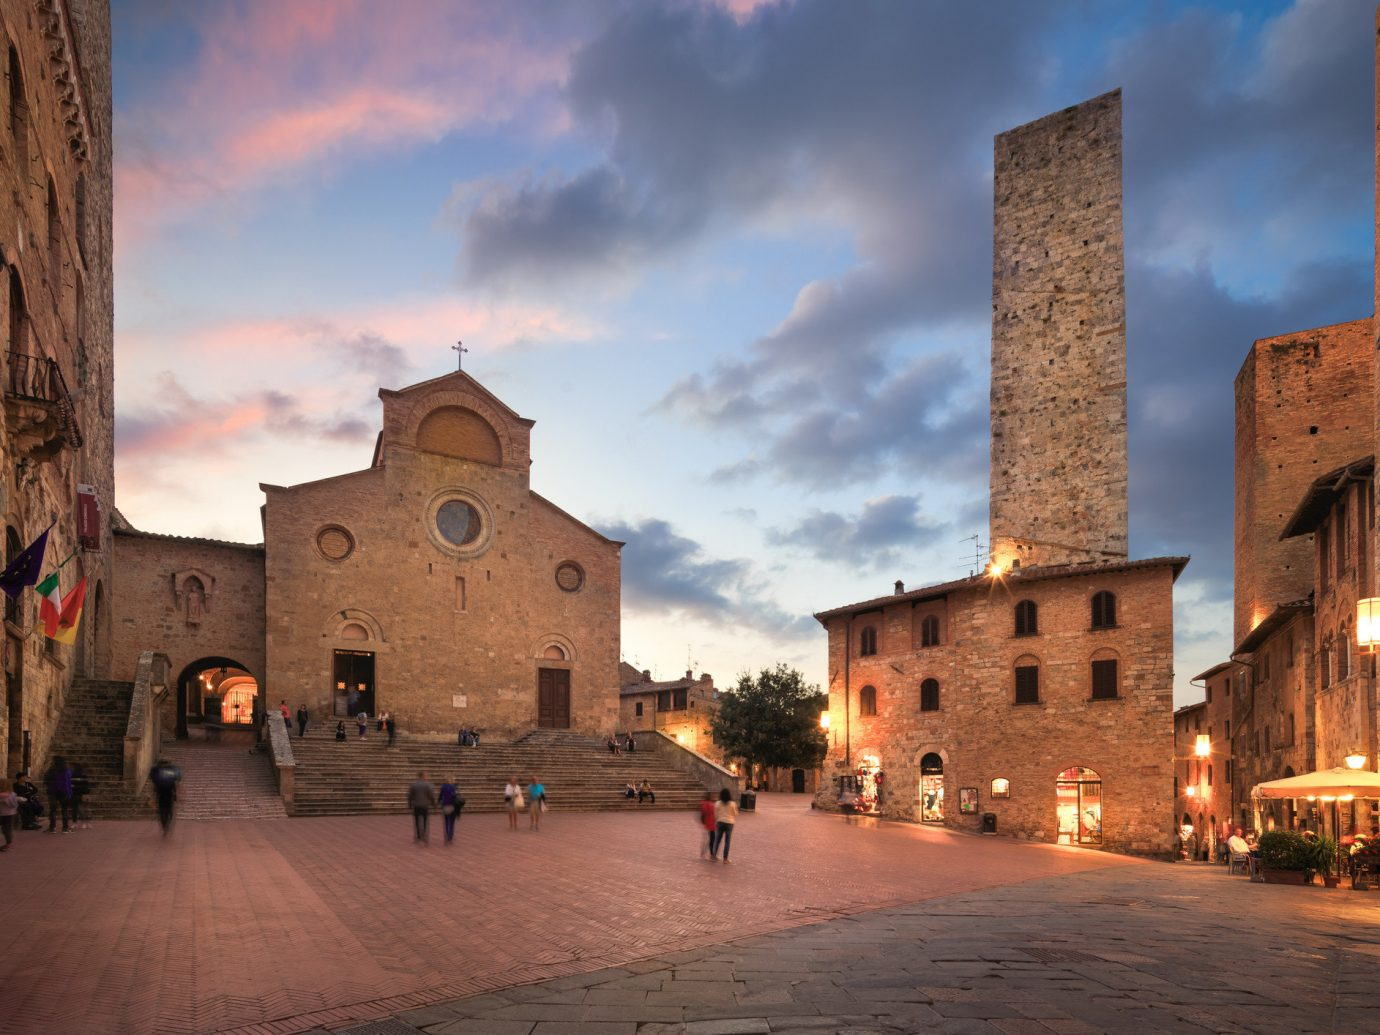 Trip Ideas building sky outdoor Town landmark City historic site town square brick history wall evening tower tourist attraction medieval architecture Downtown middle ages tourism arch facade basilica dusk ancient history bell tower Church window plaza night stone